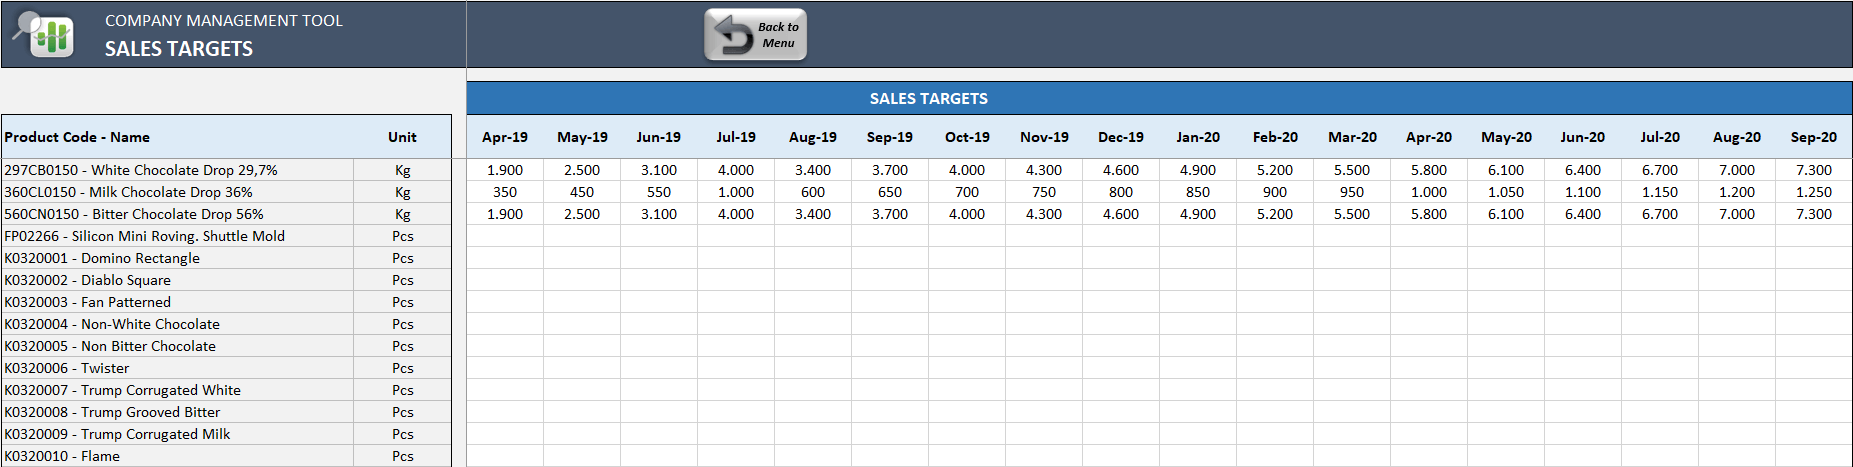 Small-Business-ERP-Template-05-Sales Targets